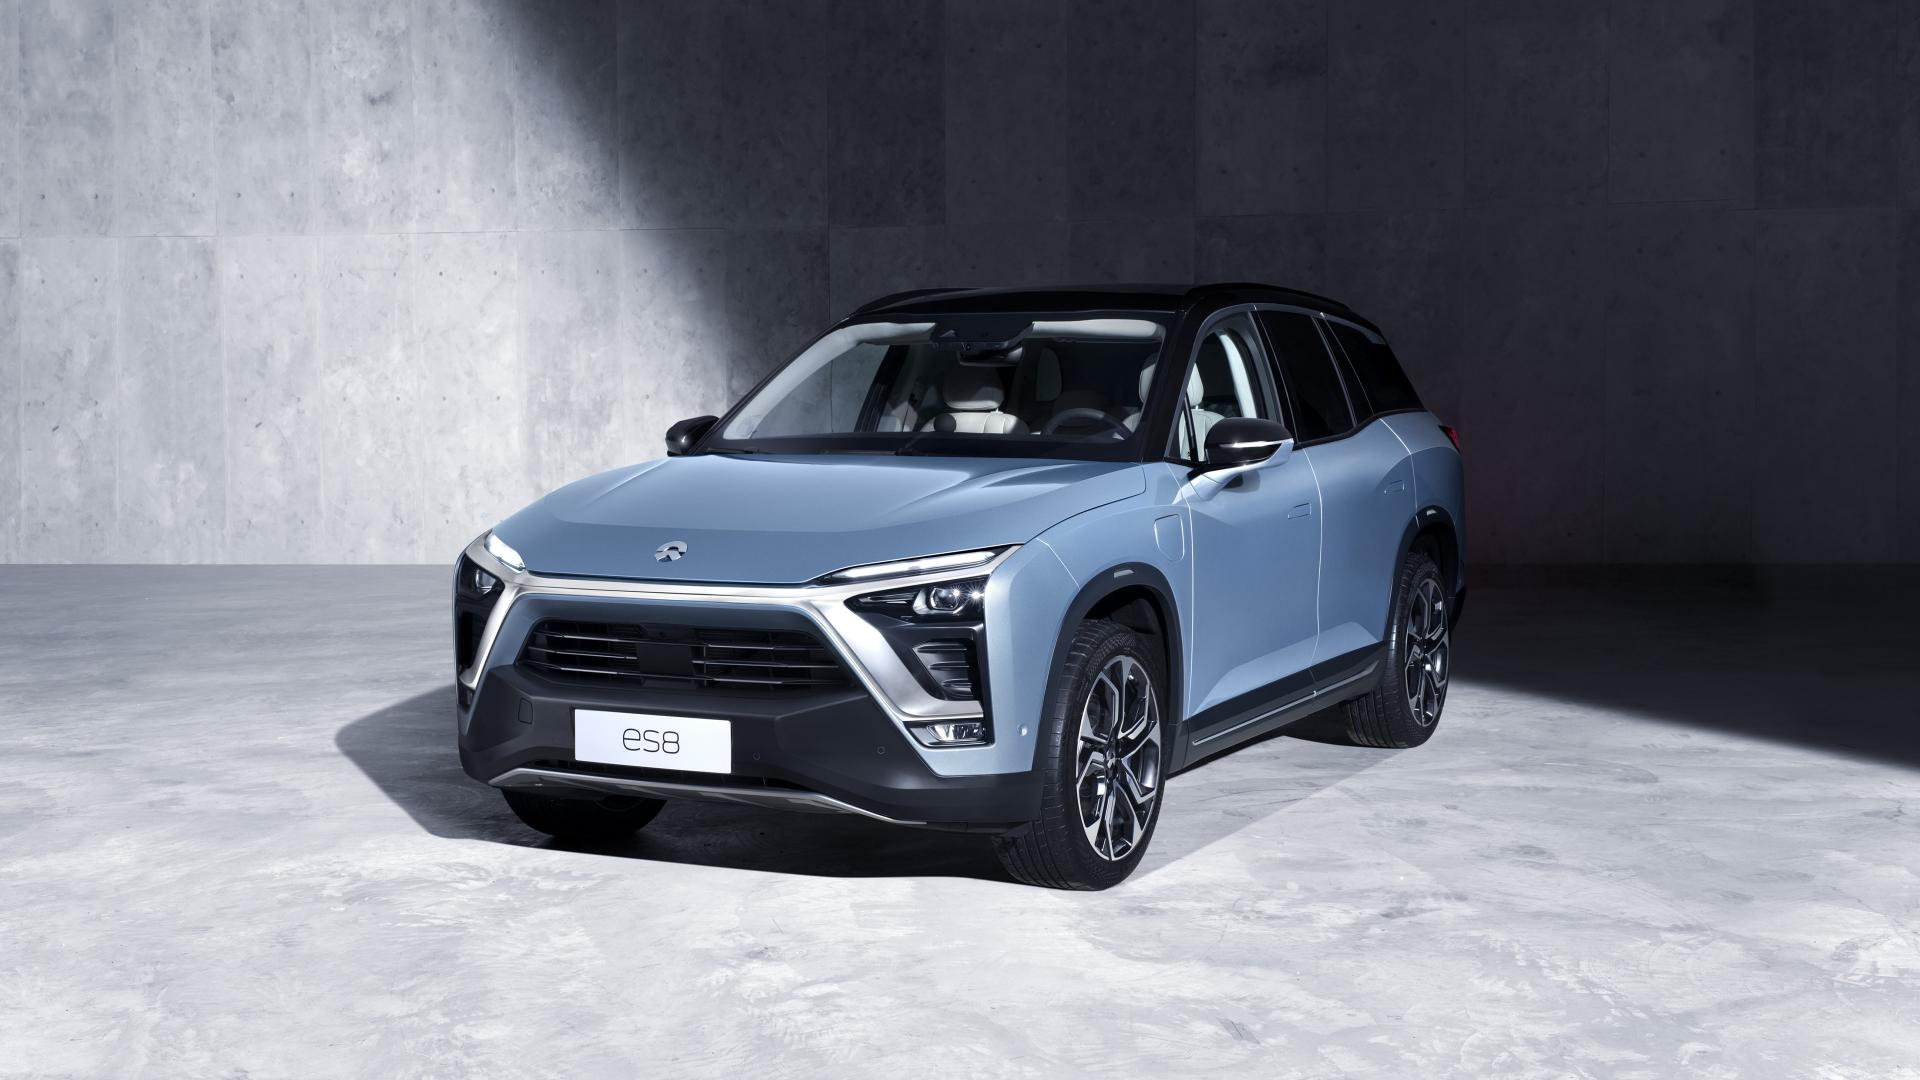 GAC Group teams up with NIO to establish a JV dedicated to R&D, sales and services of intelligent connected NEVs